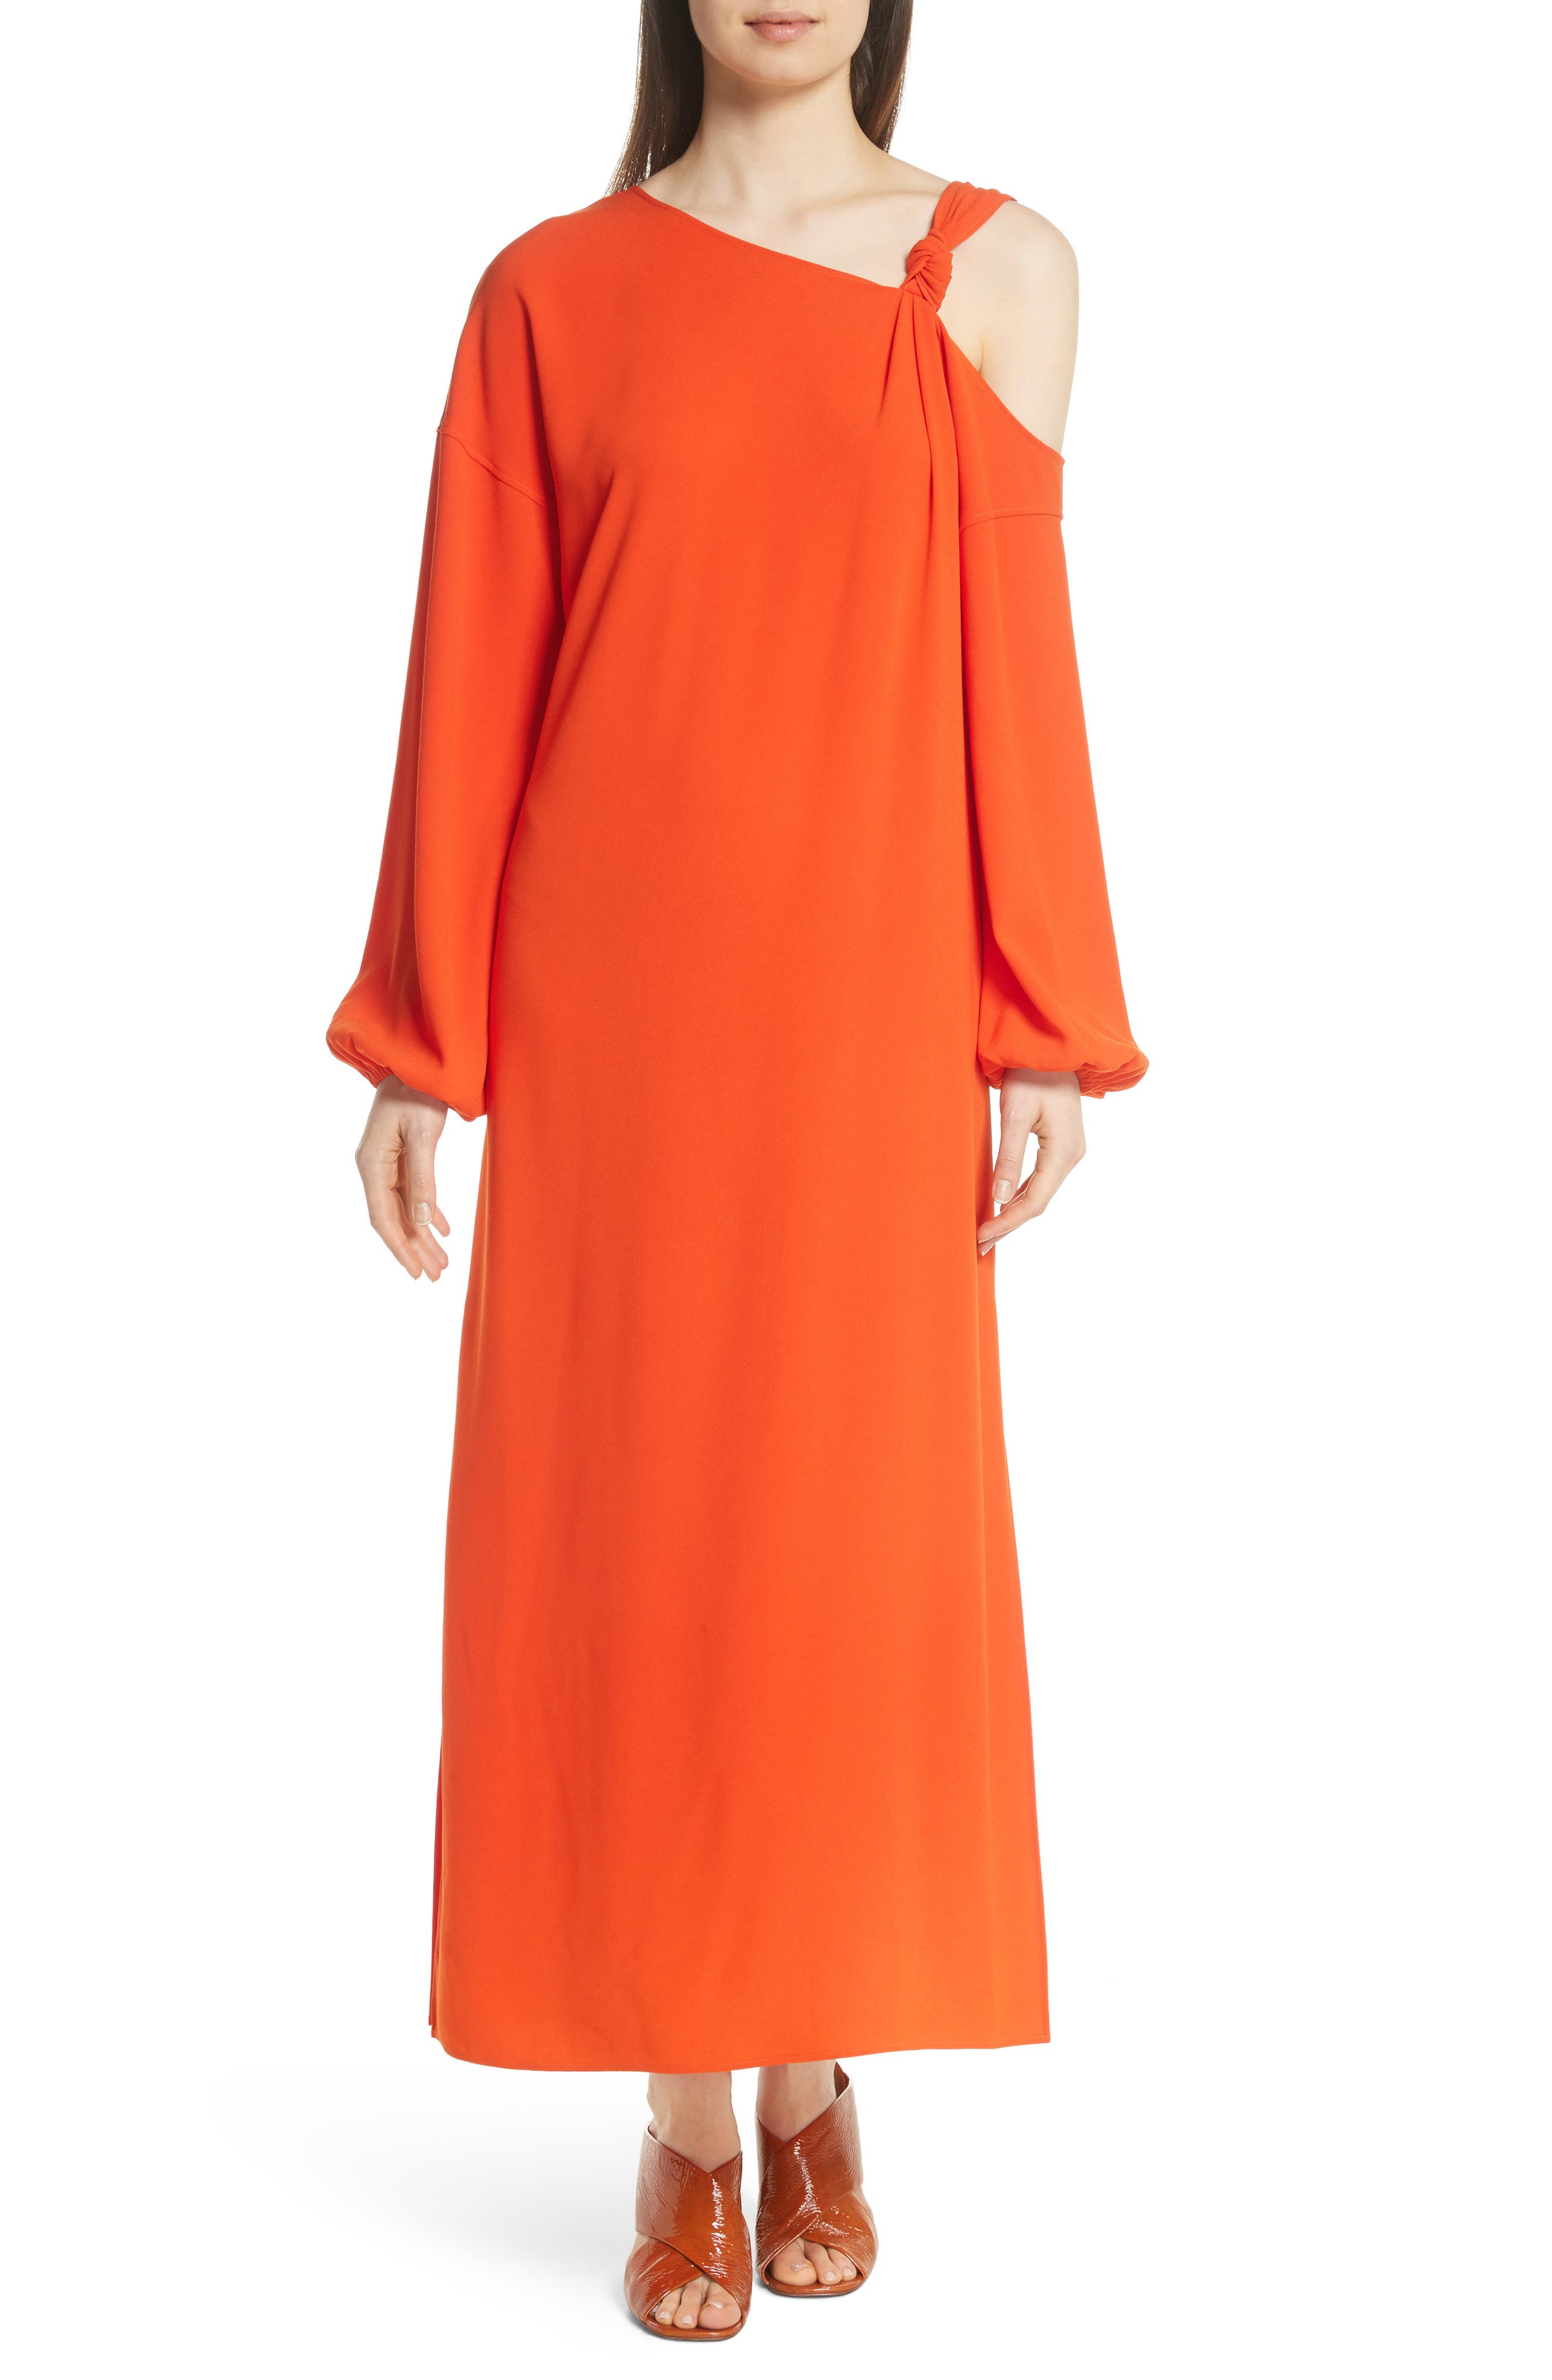 Shontae One-Shoulder Maxi Dress,                             Main thumbnail 1, color,                             Tangerine